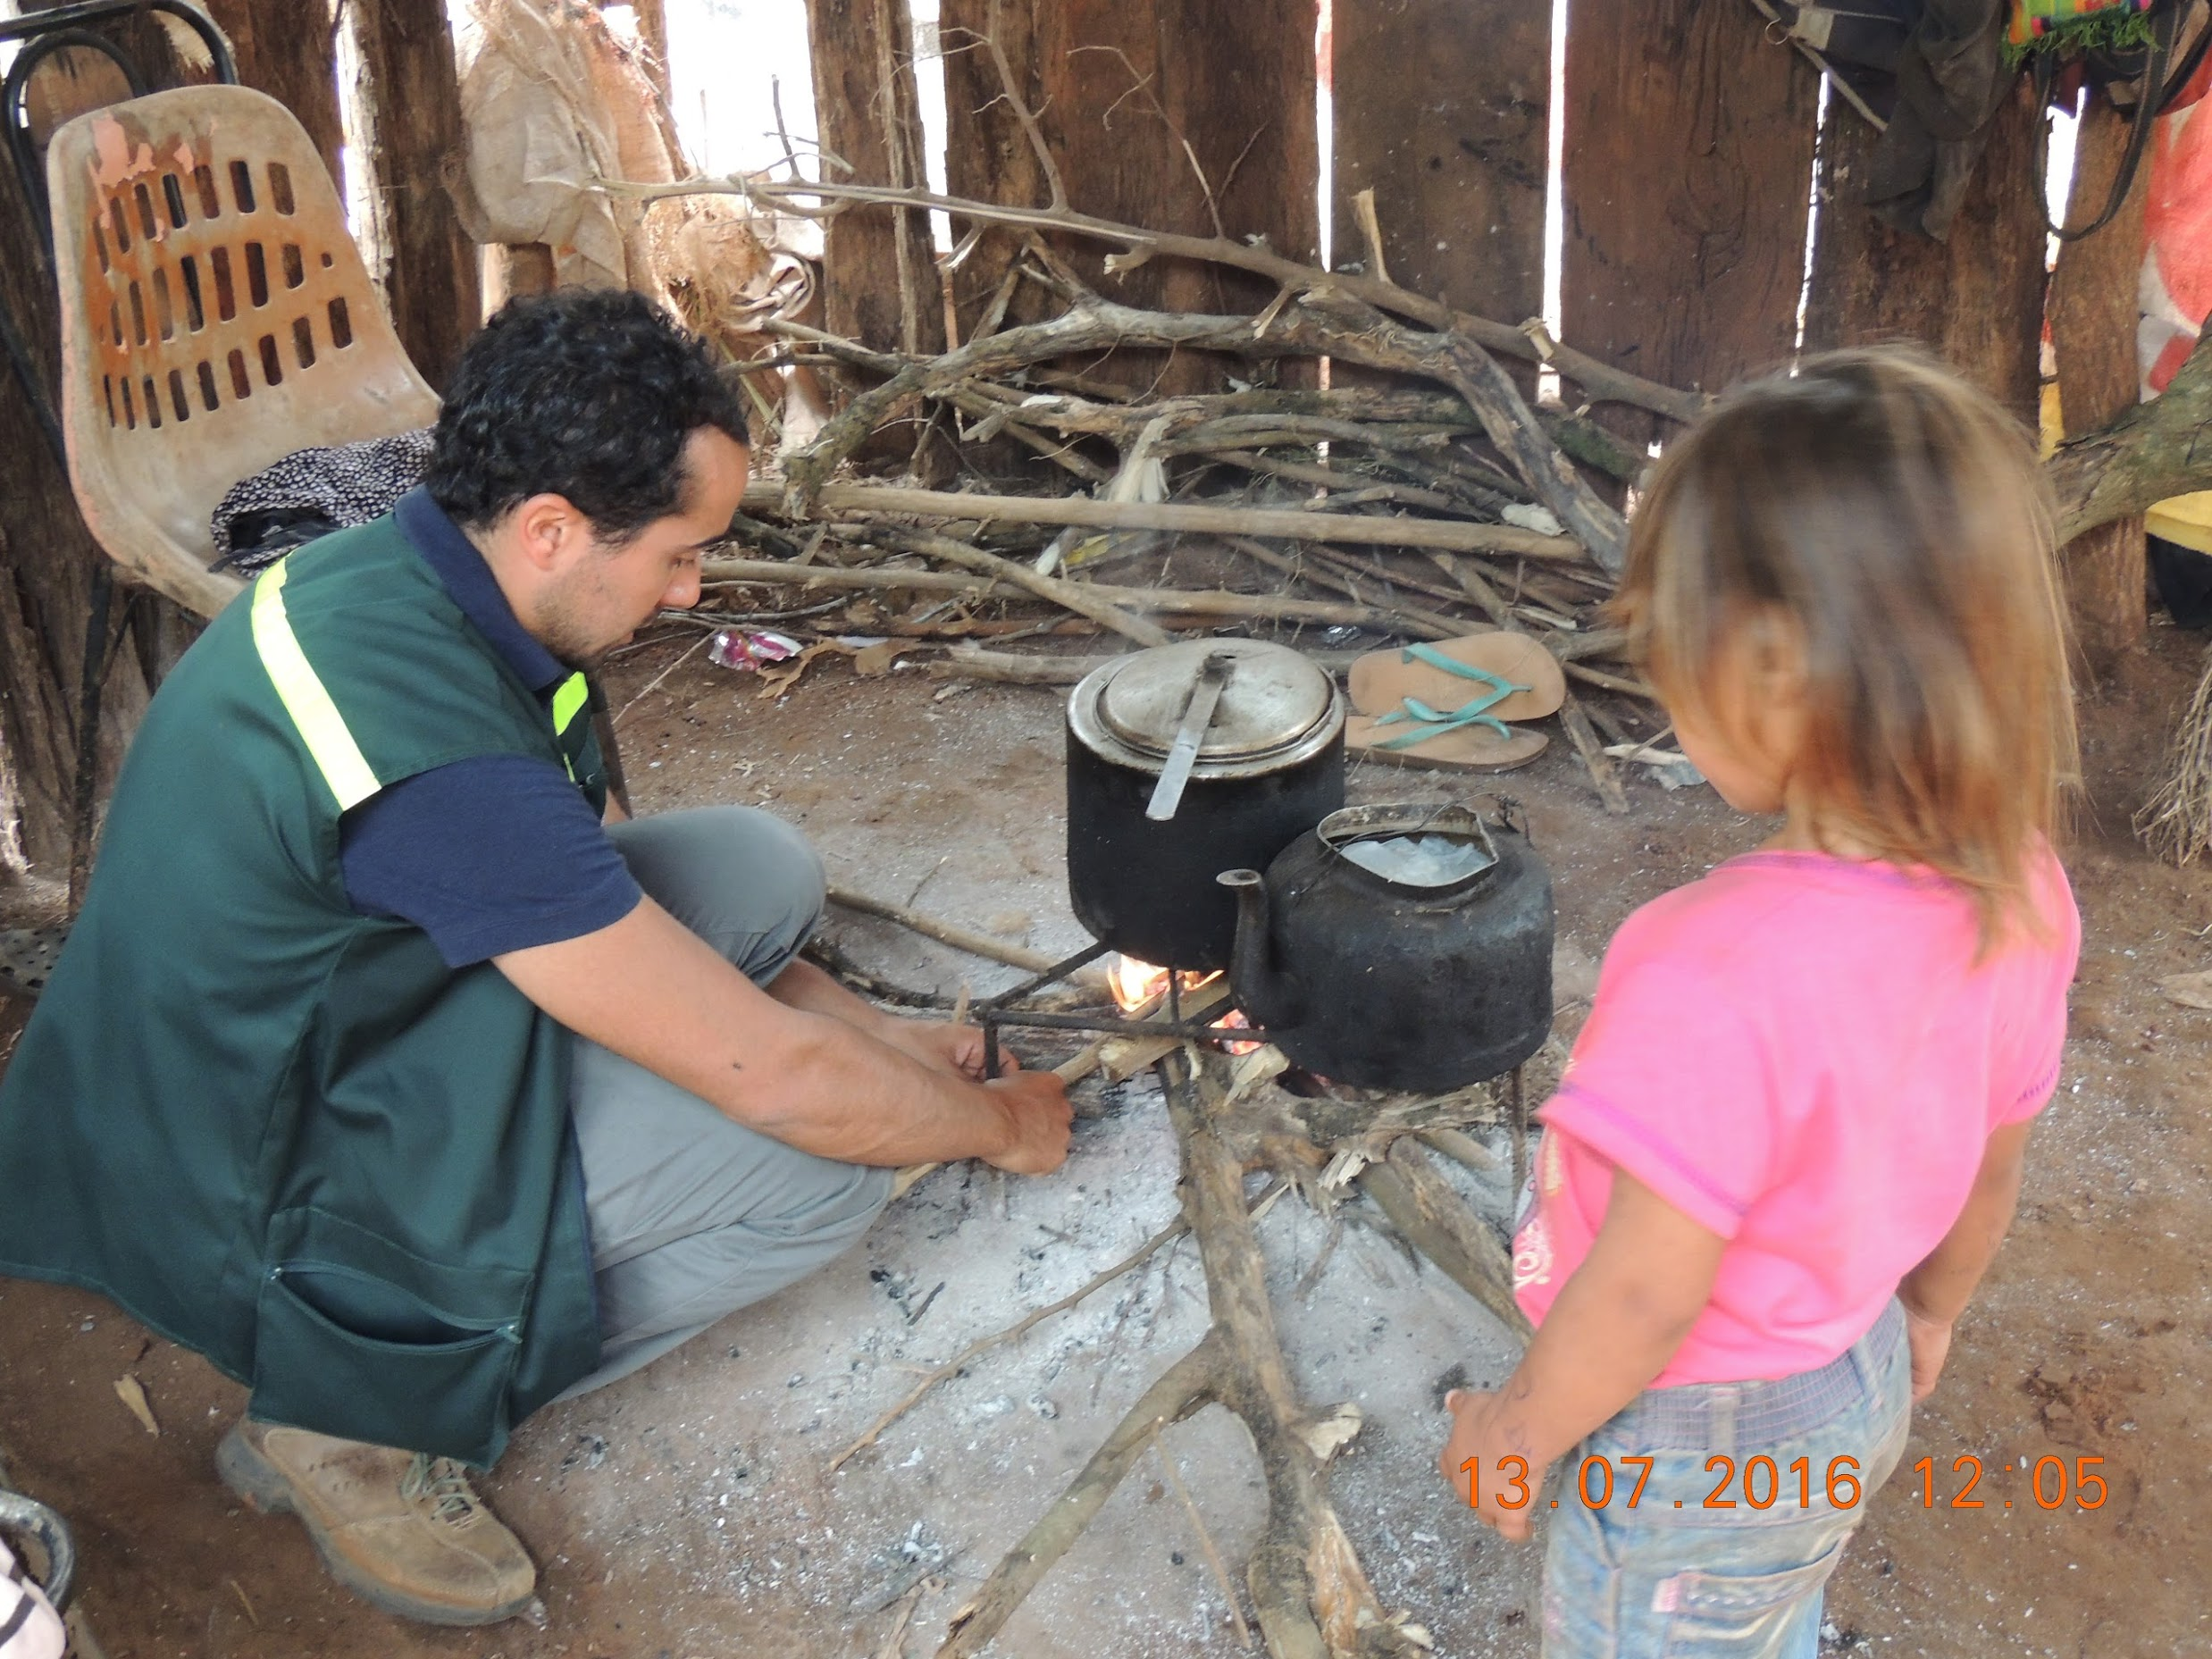 A kid looking  Matias Tagle  (GHE 17) installing a stove monitor in Paraguay.